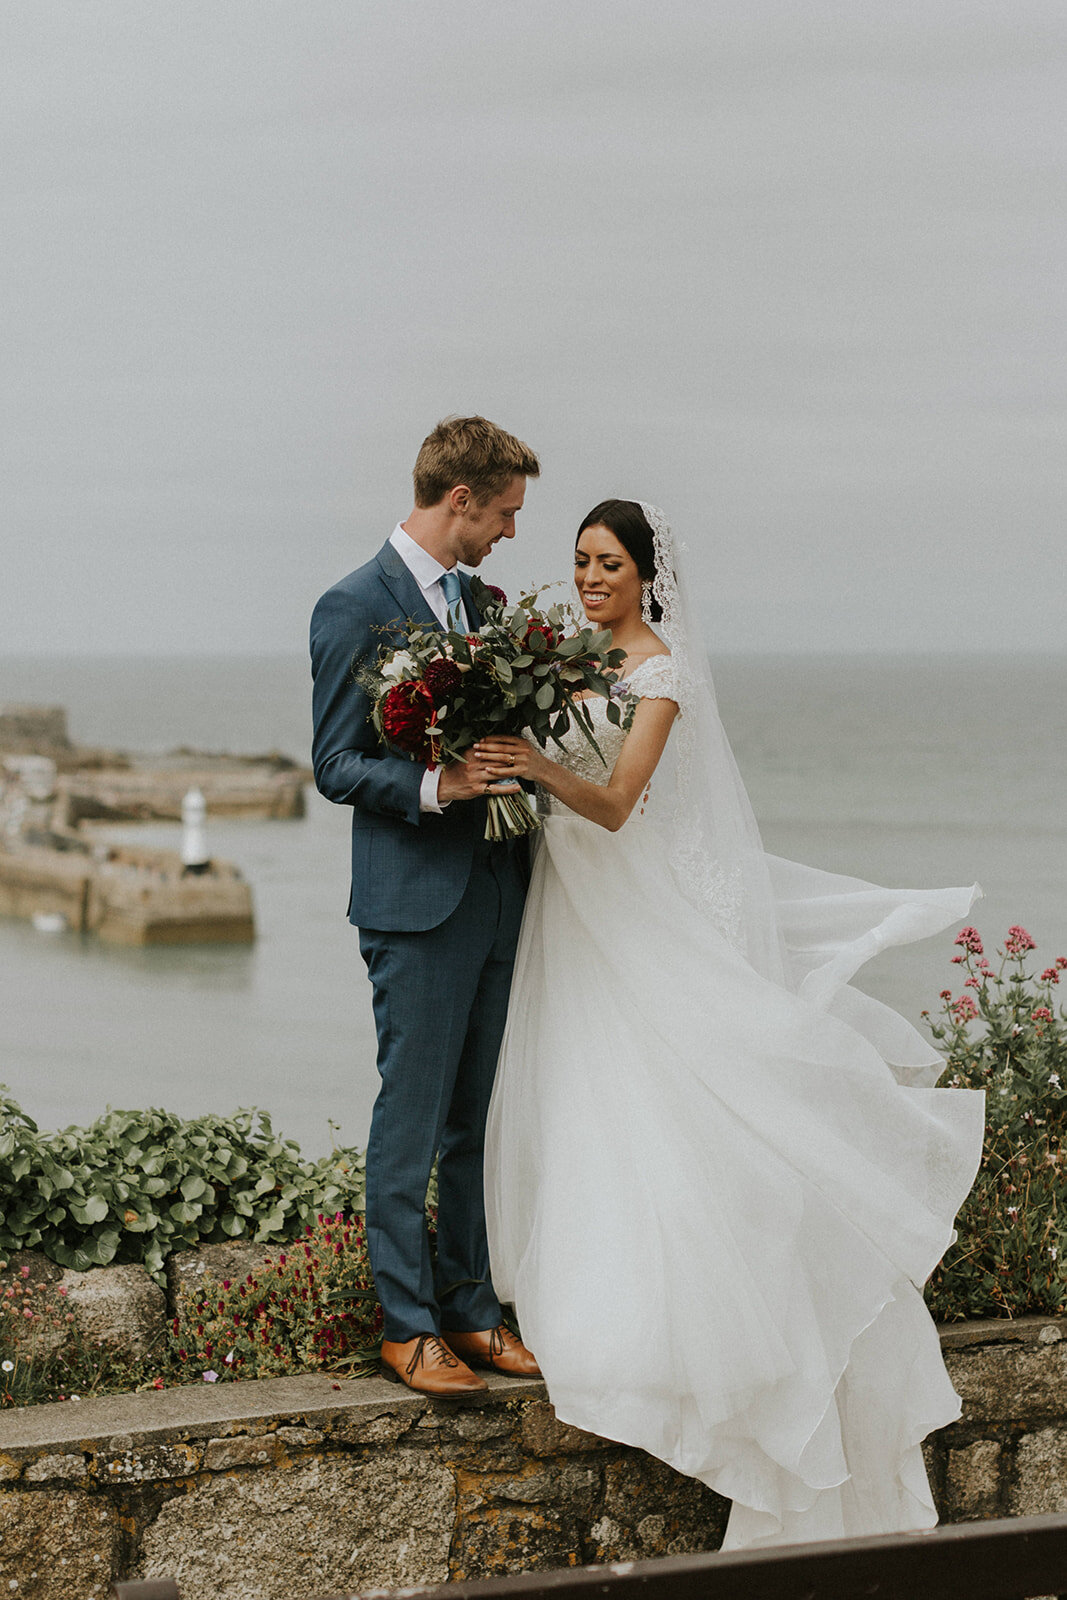 UK-wedding-Destination-Photograher-st-ives-cornwall-london-photographer-elopement-claudia-pj-wedding-8597_websize.jpg